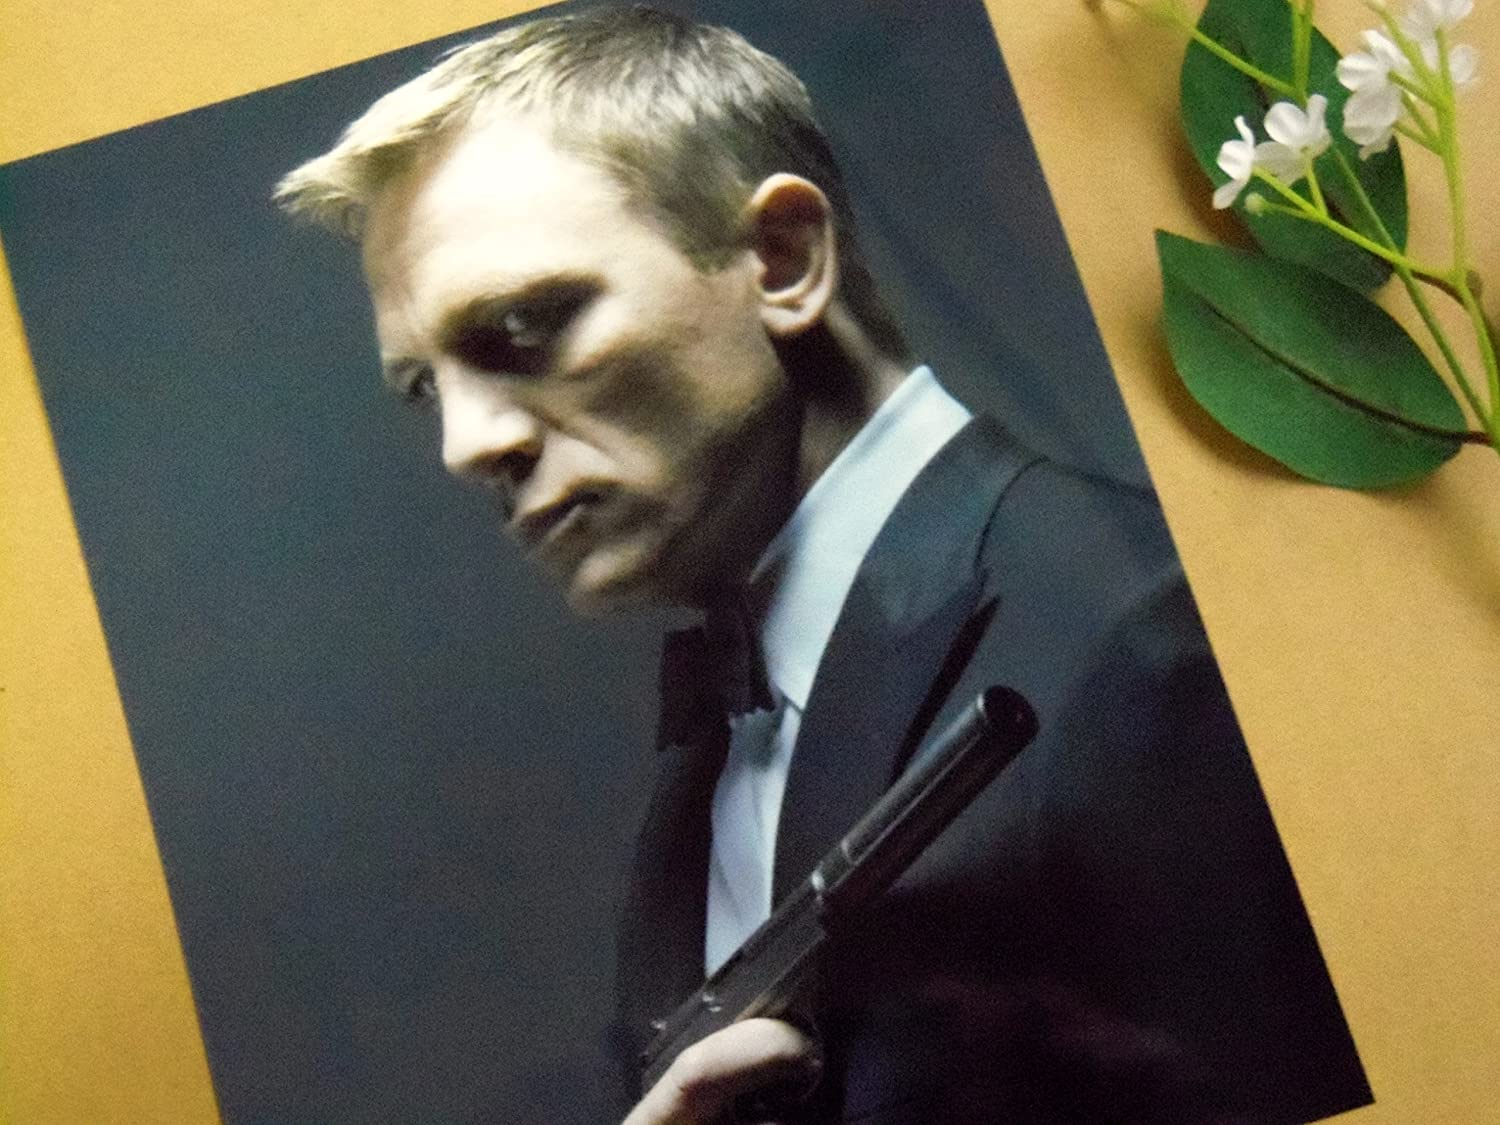 Daniel Craig Photo 8x10,sp0670